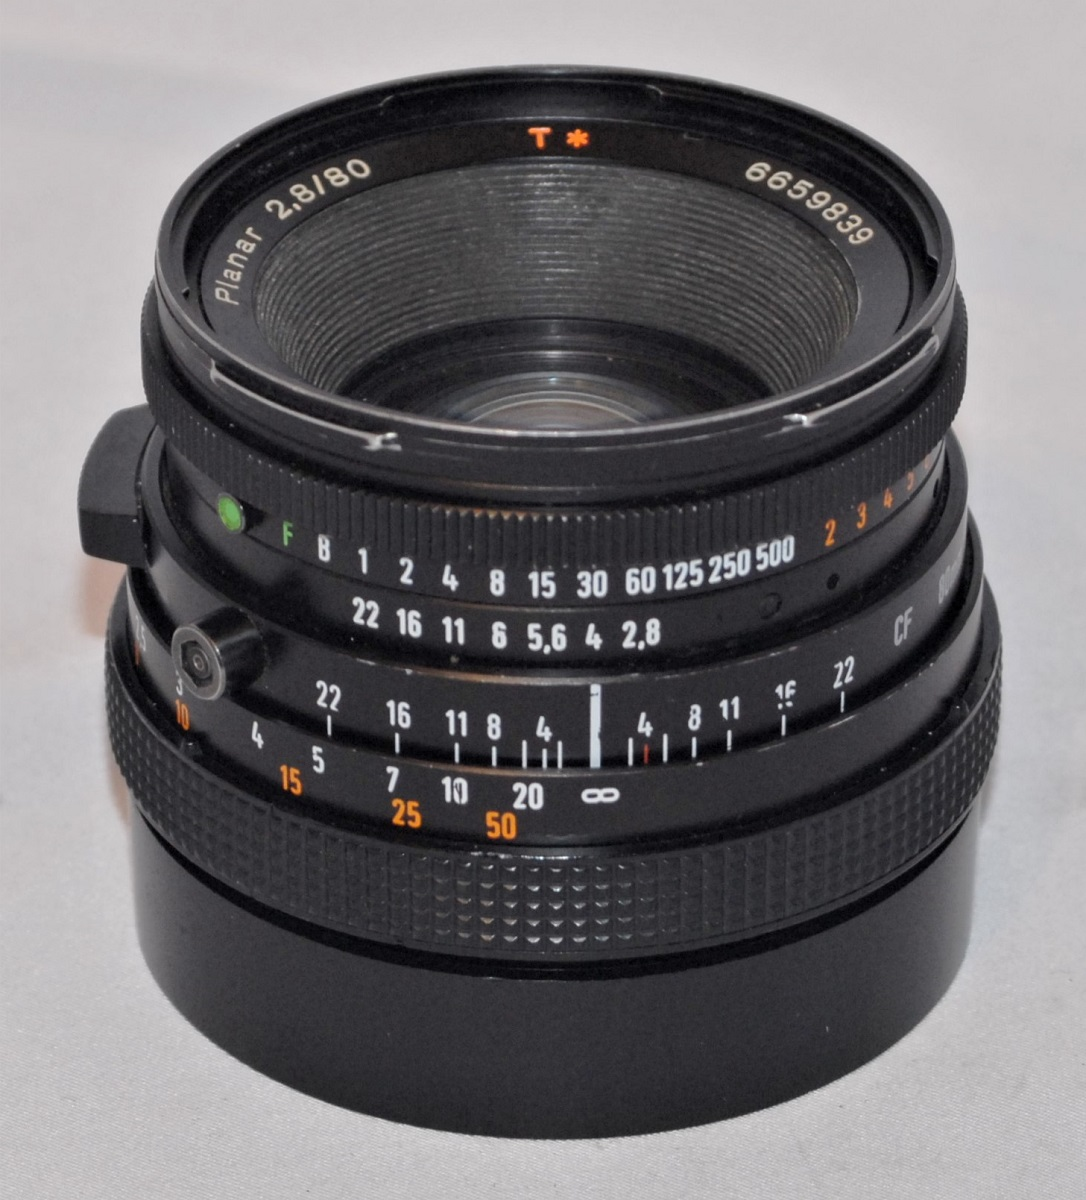 Hasselblad Planar T* 80mm f2.8 lens. Excellent condition.